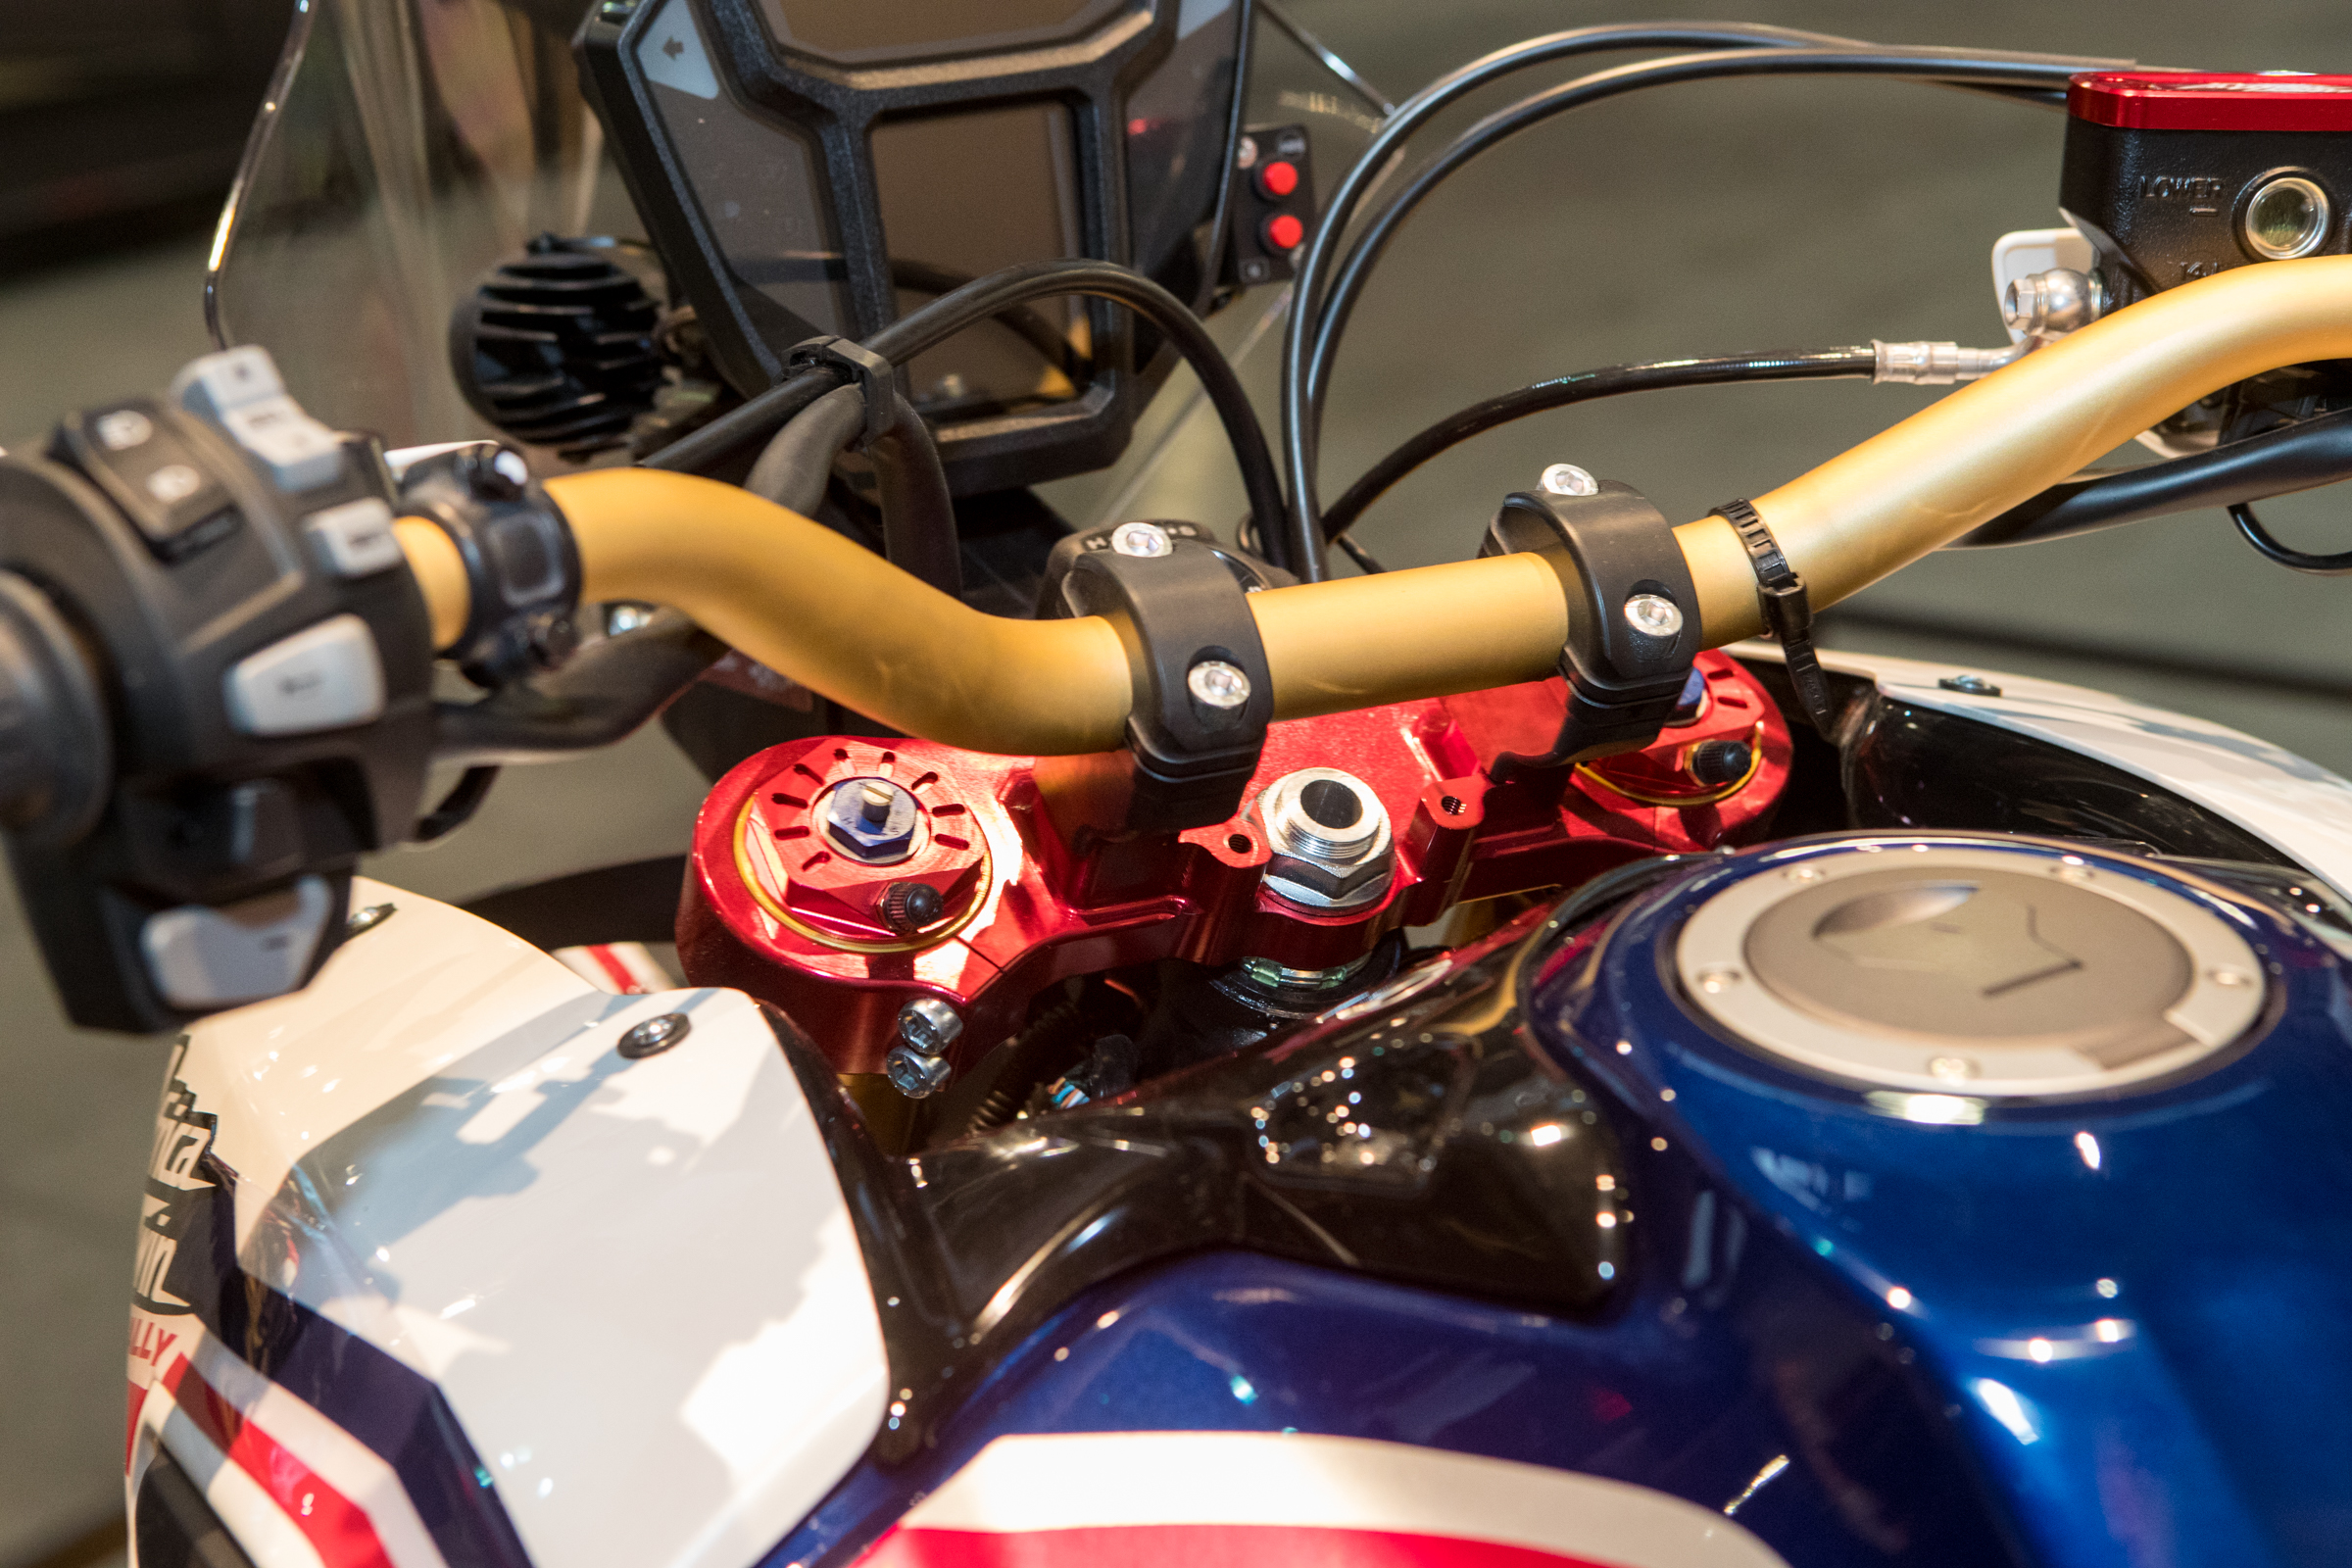 It also has beefier triple clamps, bar mounts, and new Showa forks that are more moto-esque and can have air added to the spring damping force.